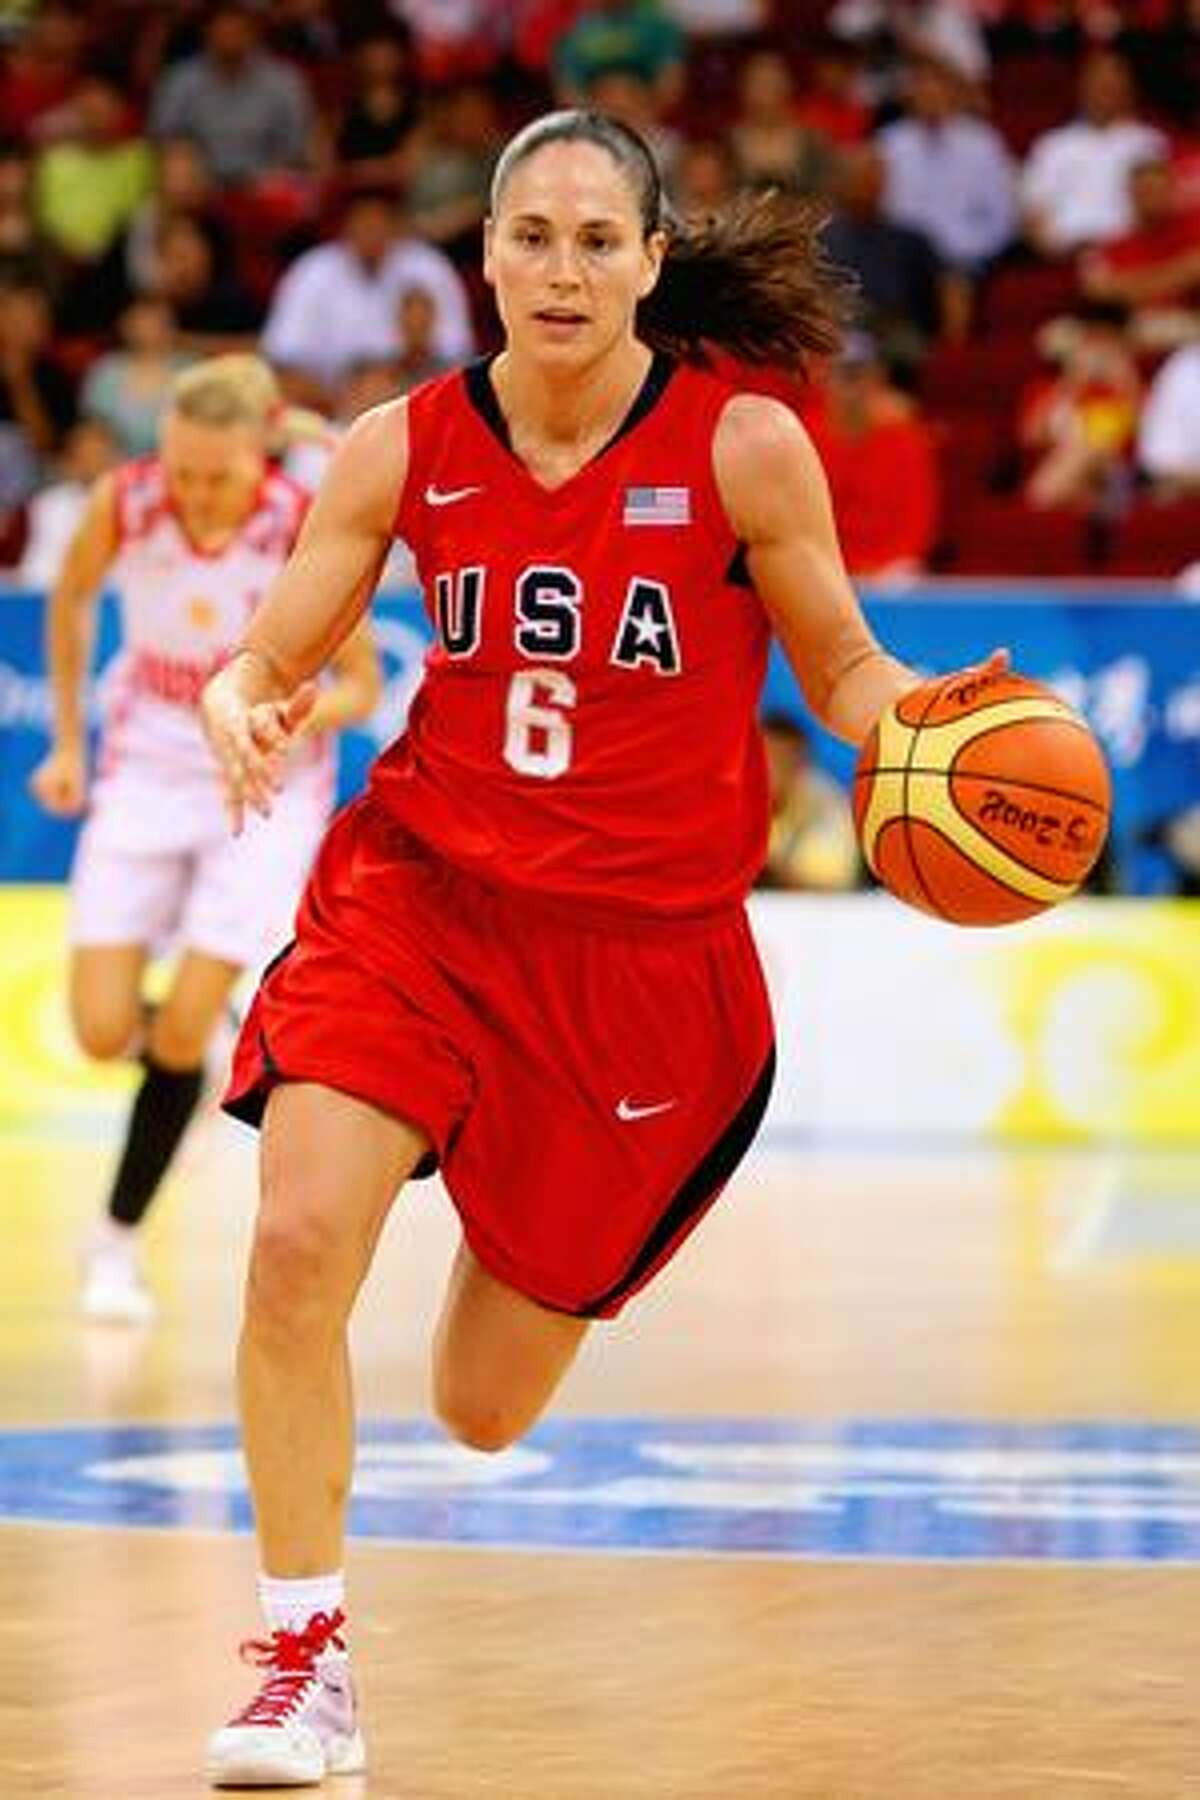 7. Sue Bird: Storm point guard has classy, athletic girl-next-door look on the floor, but when she's out of uniform and wearing street clothes, yowza. Ranked No. 9 on the 2005 list. -- Jim Moore